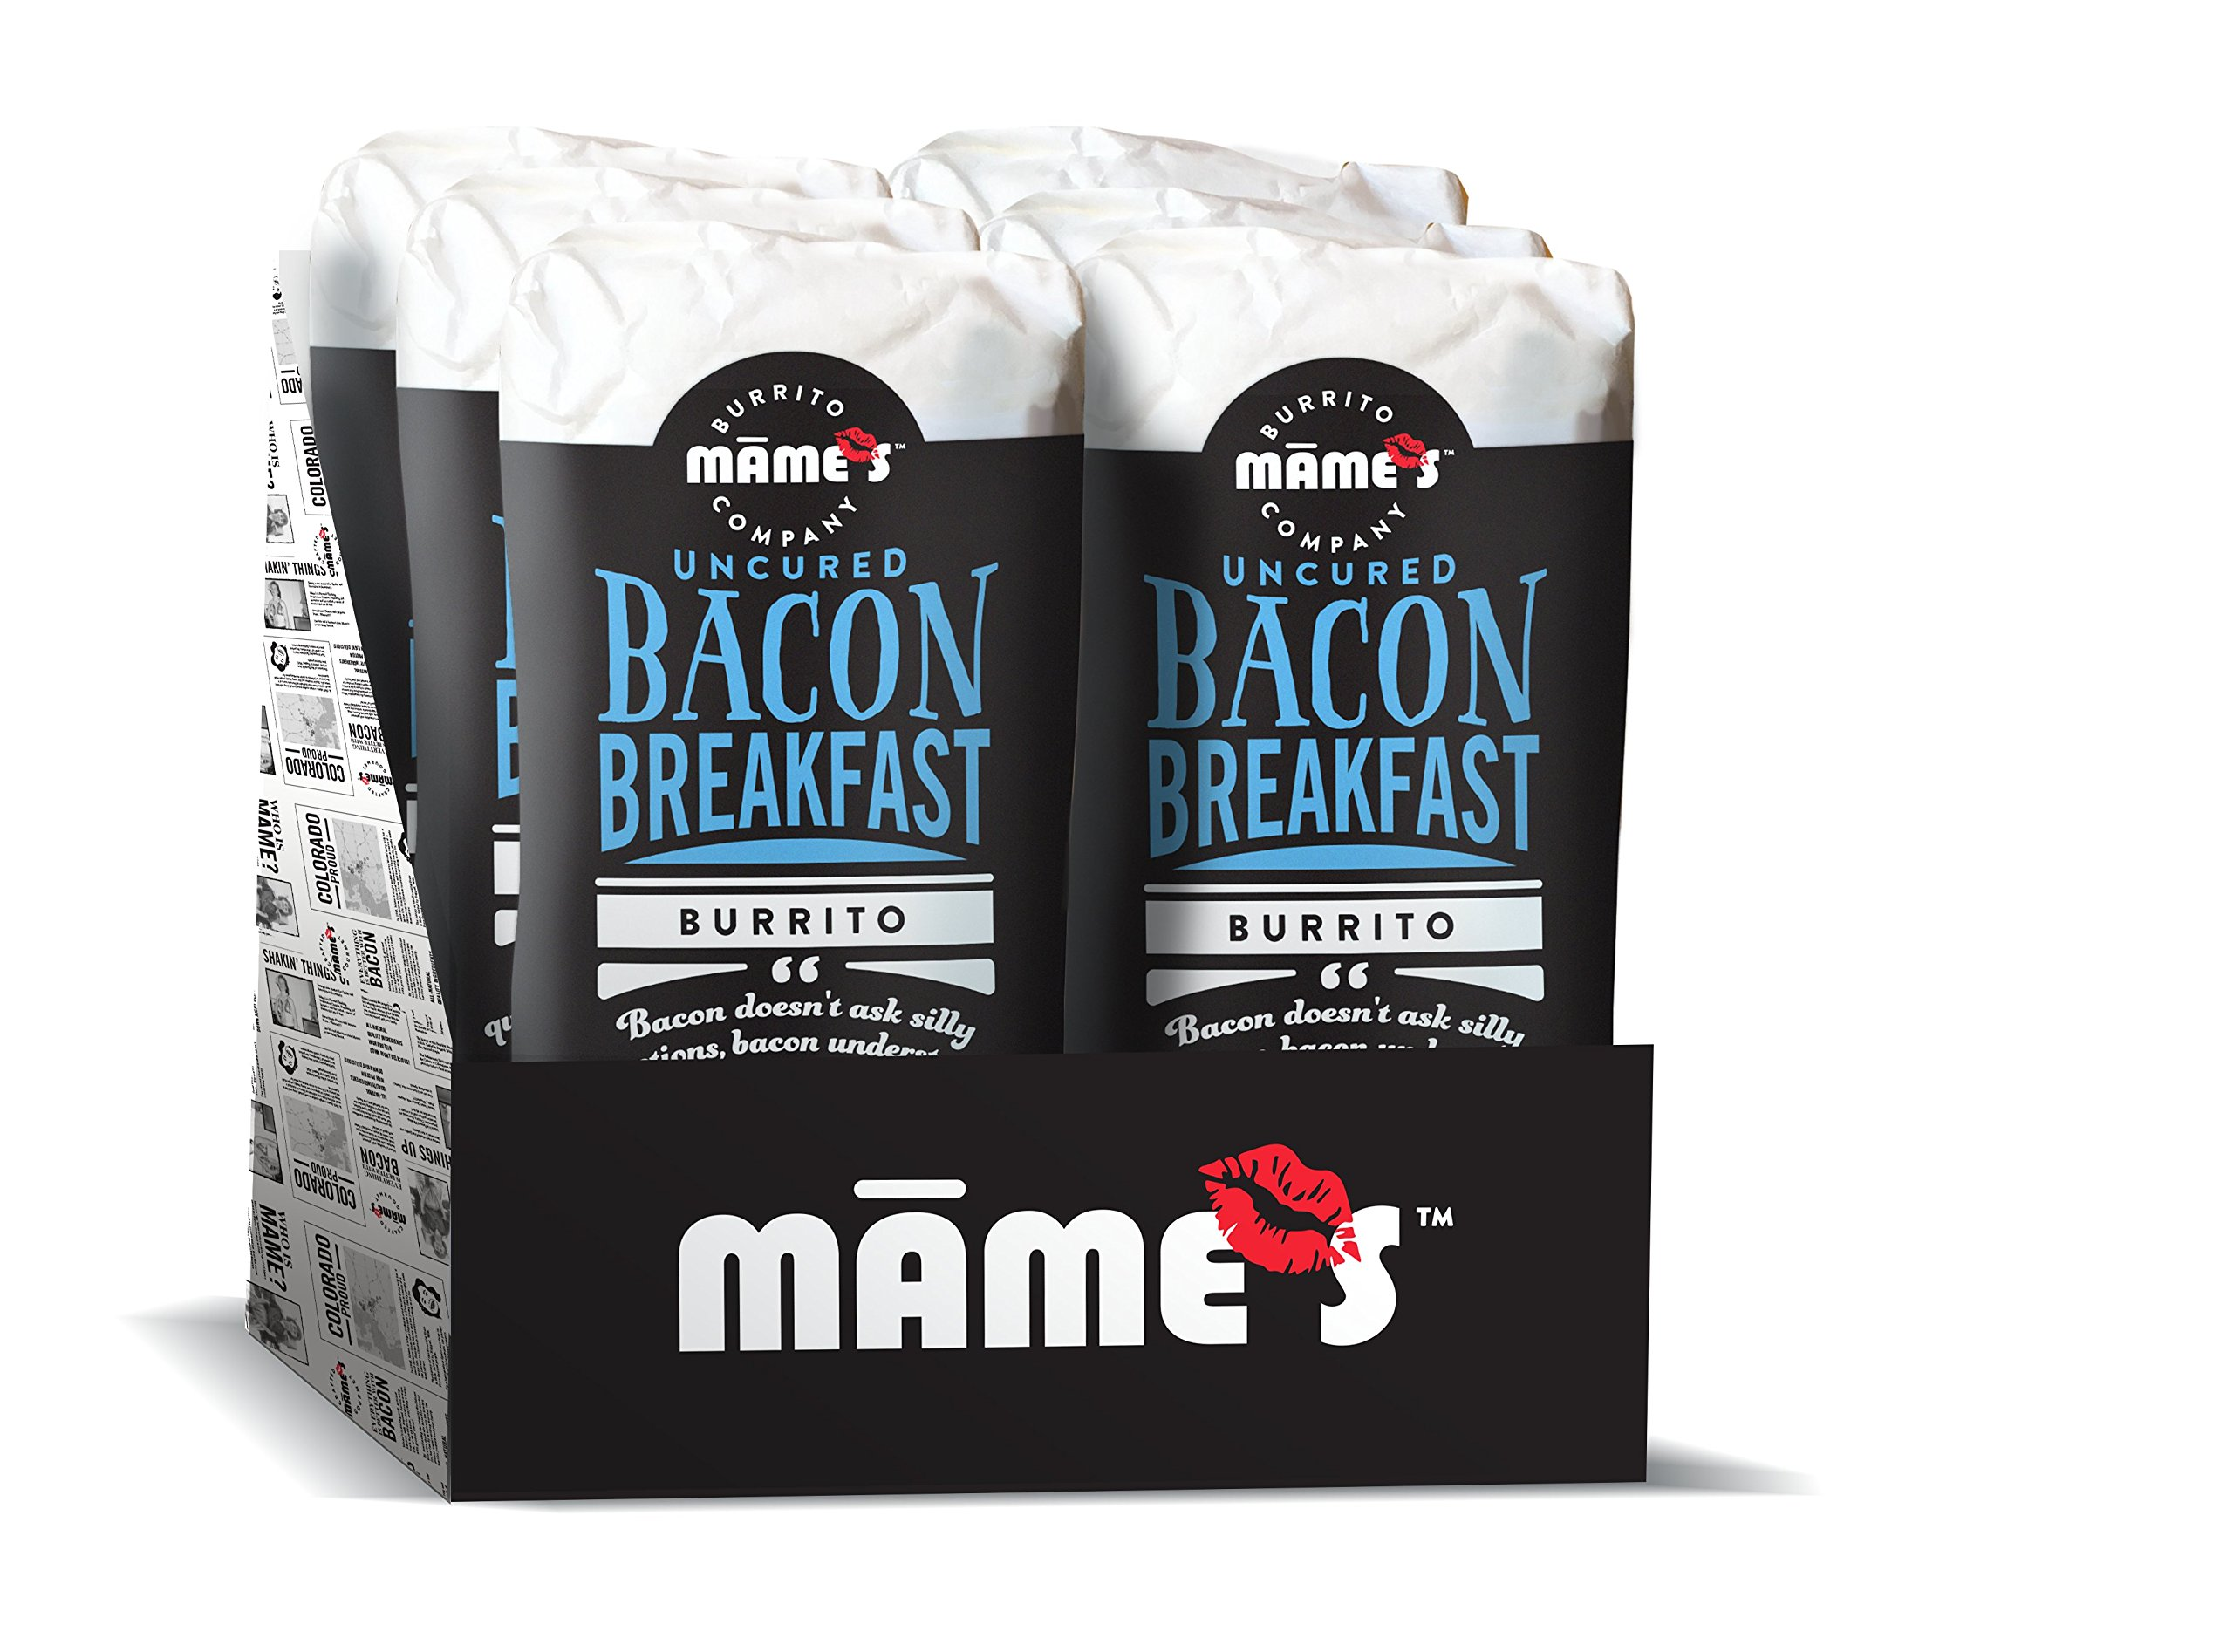 Mame's Burrito Company Bacon Breakfast Burrito, 7 Ounce (Pack of 12) by Mame's Burrito Company